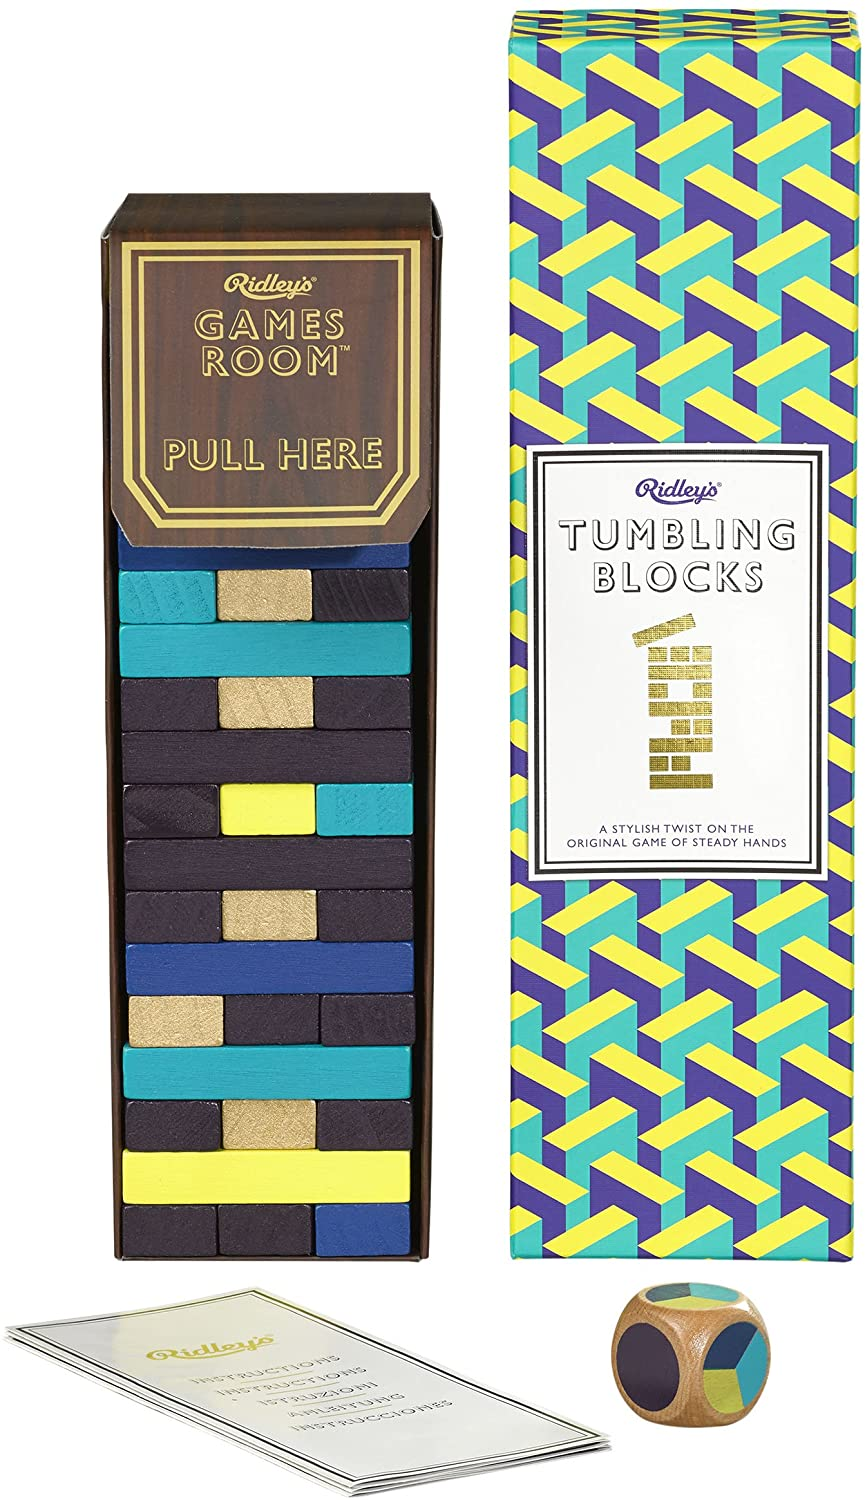 Ridley's Games Room Tumbling Blocks Cards